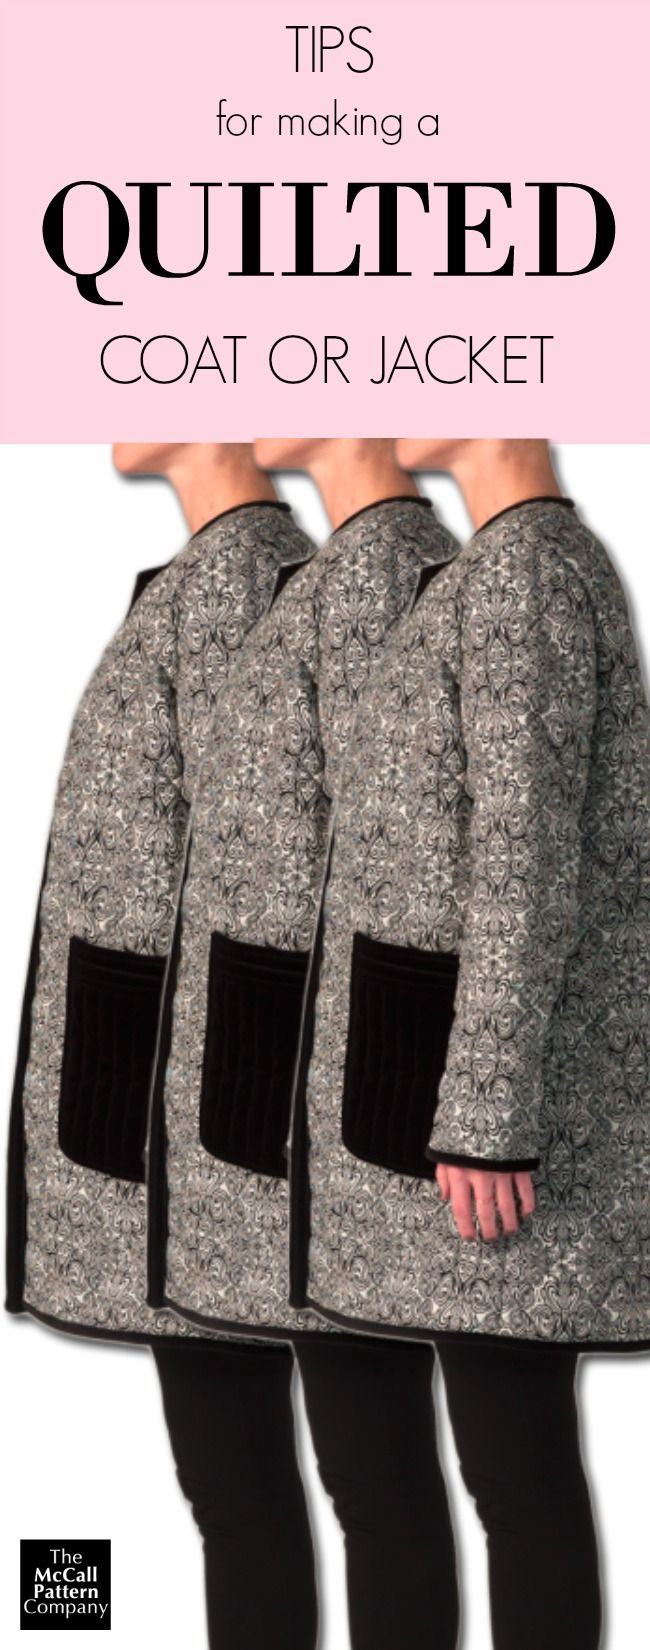 Tips for quilting your first coat or jacket. On the McCall Pattern Company blog.